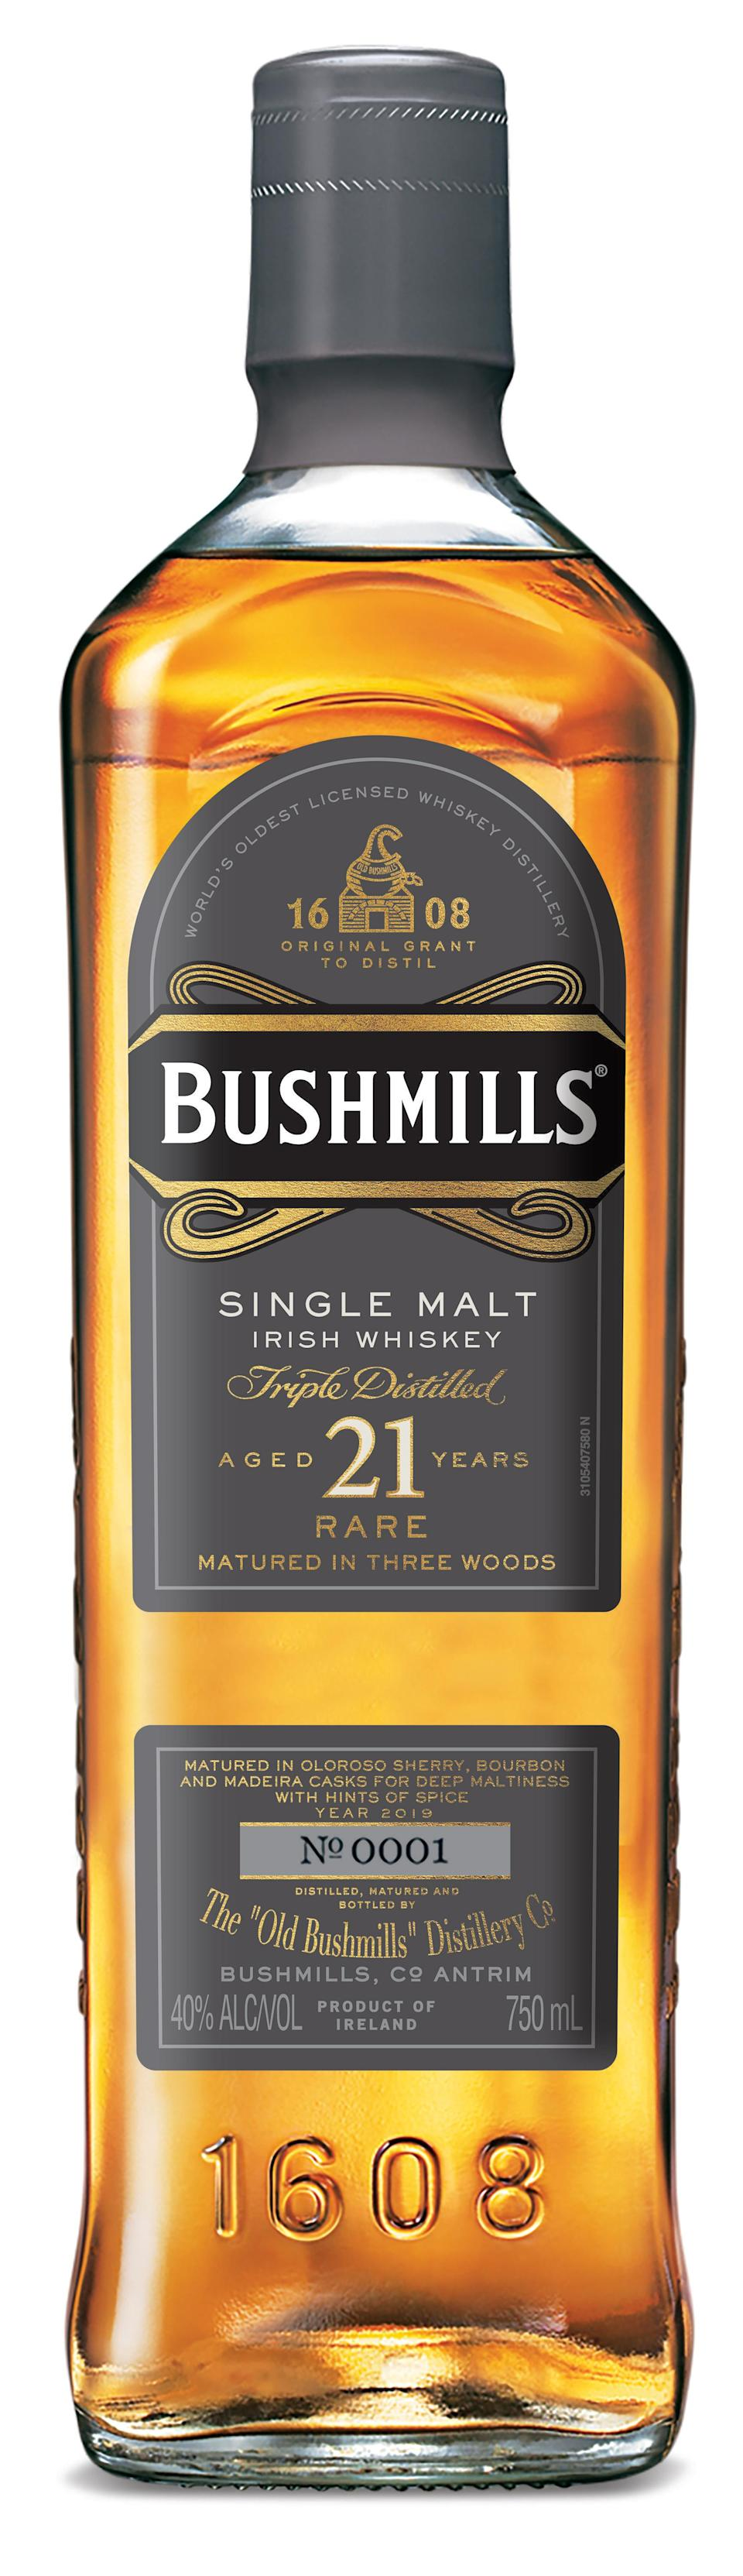 """<p><strong>Bushmills</strong></p><p>drizly.com</p><p><strong>$249.99</strong></p><p><a href=""""https://go.redirectingat.com?id=74968X1596630&url=https%3A%2F%2Fdrizly.com%2Fliquor%2Fwhiskey%2Firish-whiskey%2Fbushmills-21-year-single-malt-irish-whiskey%2Fp2285%3Fvariant%3D3063&sref=https%3A%2F%2Fwww.delish.com%2Fentertaining%2Fg31132182%2Fbest-irish-whiskey%2F"""" rel=""""nofollow noopener"""" target=""""_blank"""" data-ylk=""""slk:BUY NOW"""" class=""""link rapid-noclick-resp"""">BUY NOW</a></p><p>This is one that belongs on your bar cart or perhaps hidden somewhere special in your desk. Bushmills has a 400-year history of making delicious, high-quality Irish whiskey and this is one of its finest creations. It takes 21 years for this bottle to make its way to your door, so what better way to celebrate Irish history than with a piece of it? </p>"""